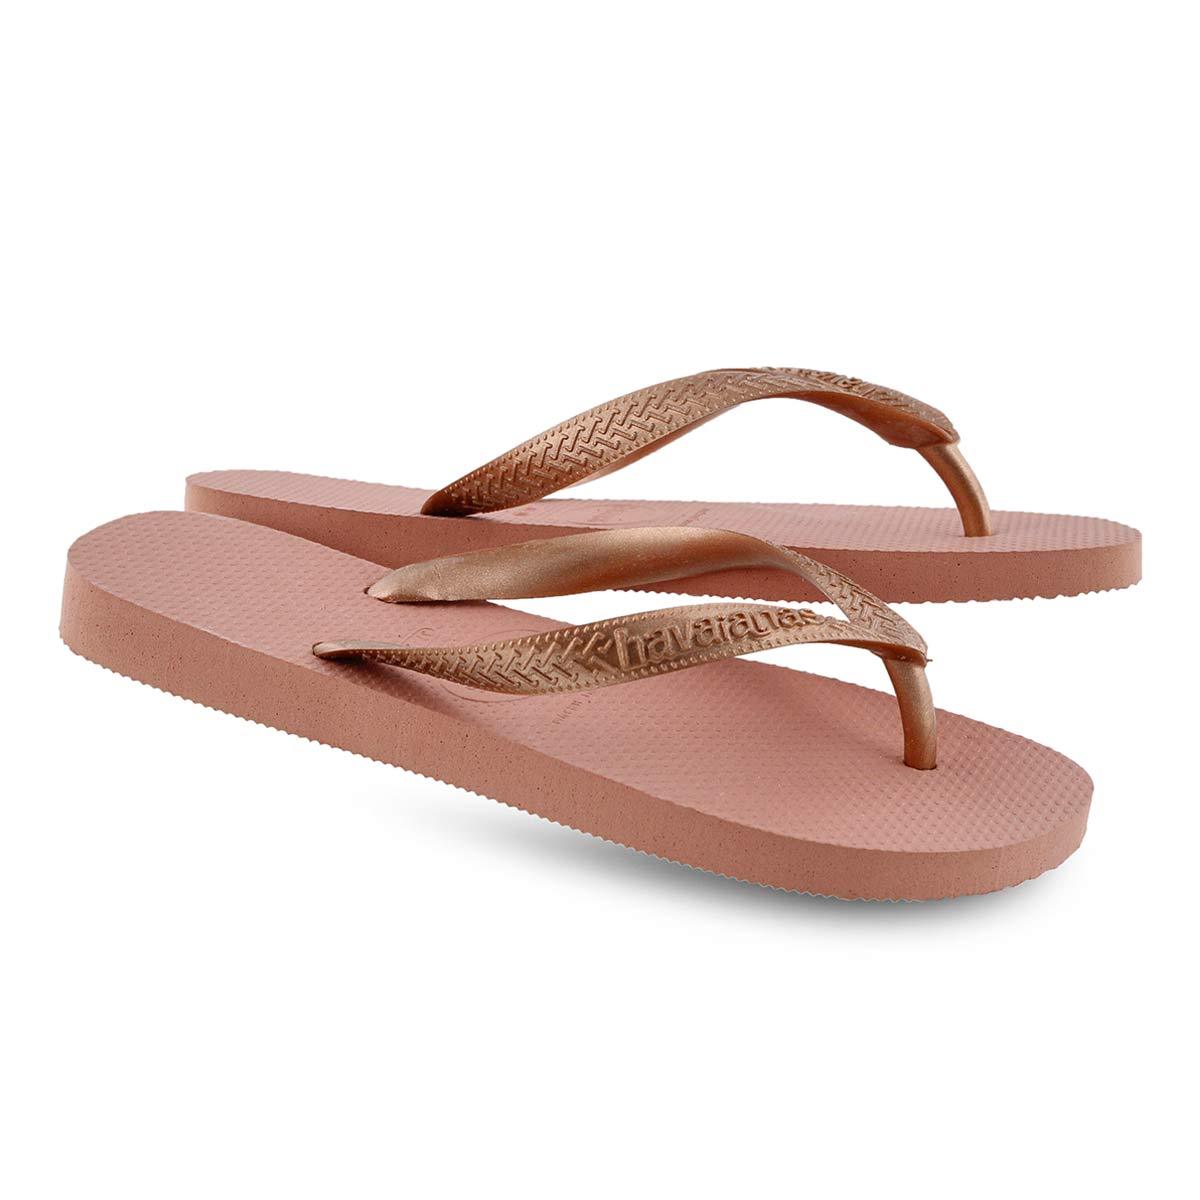 Lds Top Tiras rose nude flip flop